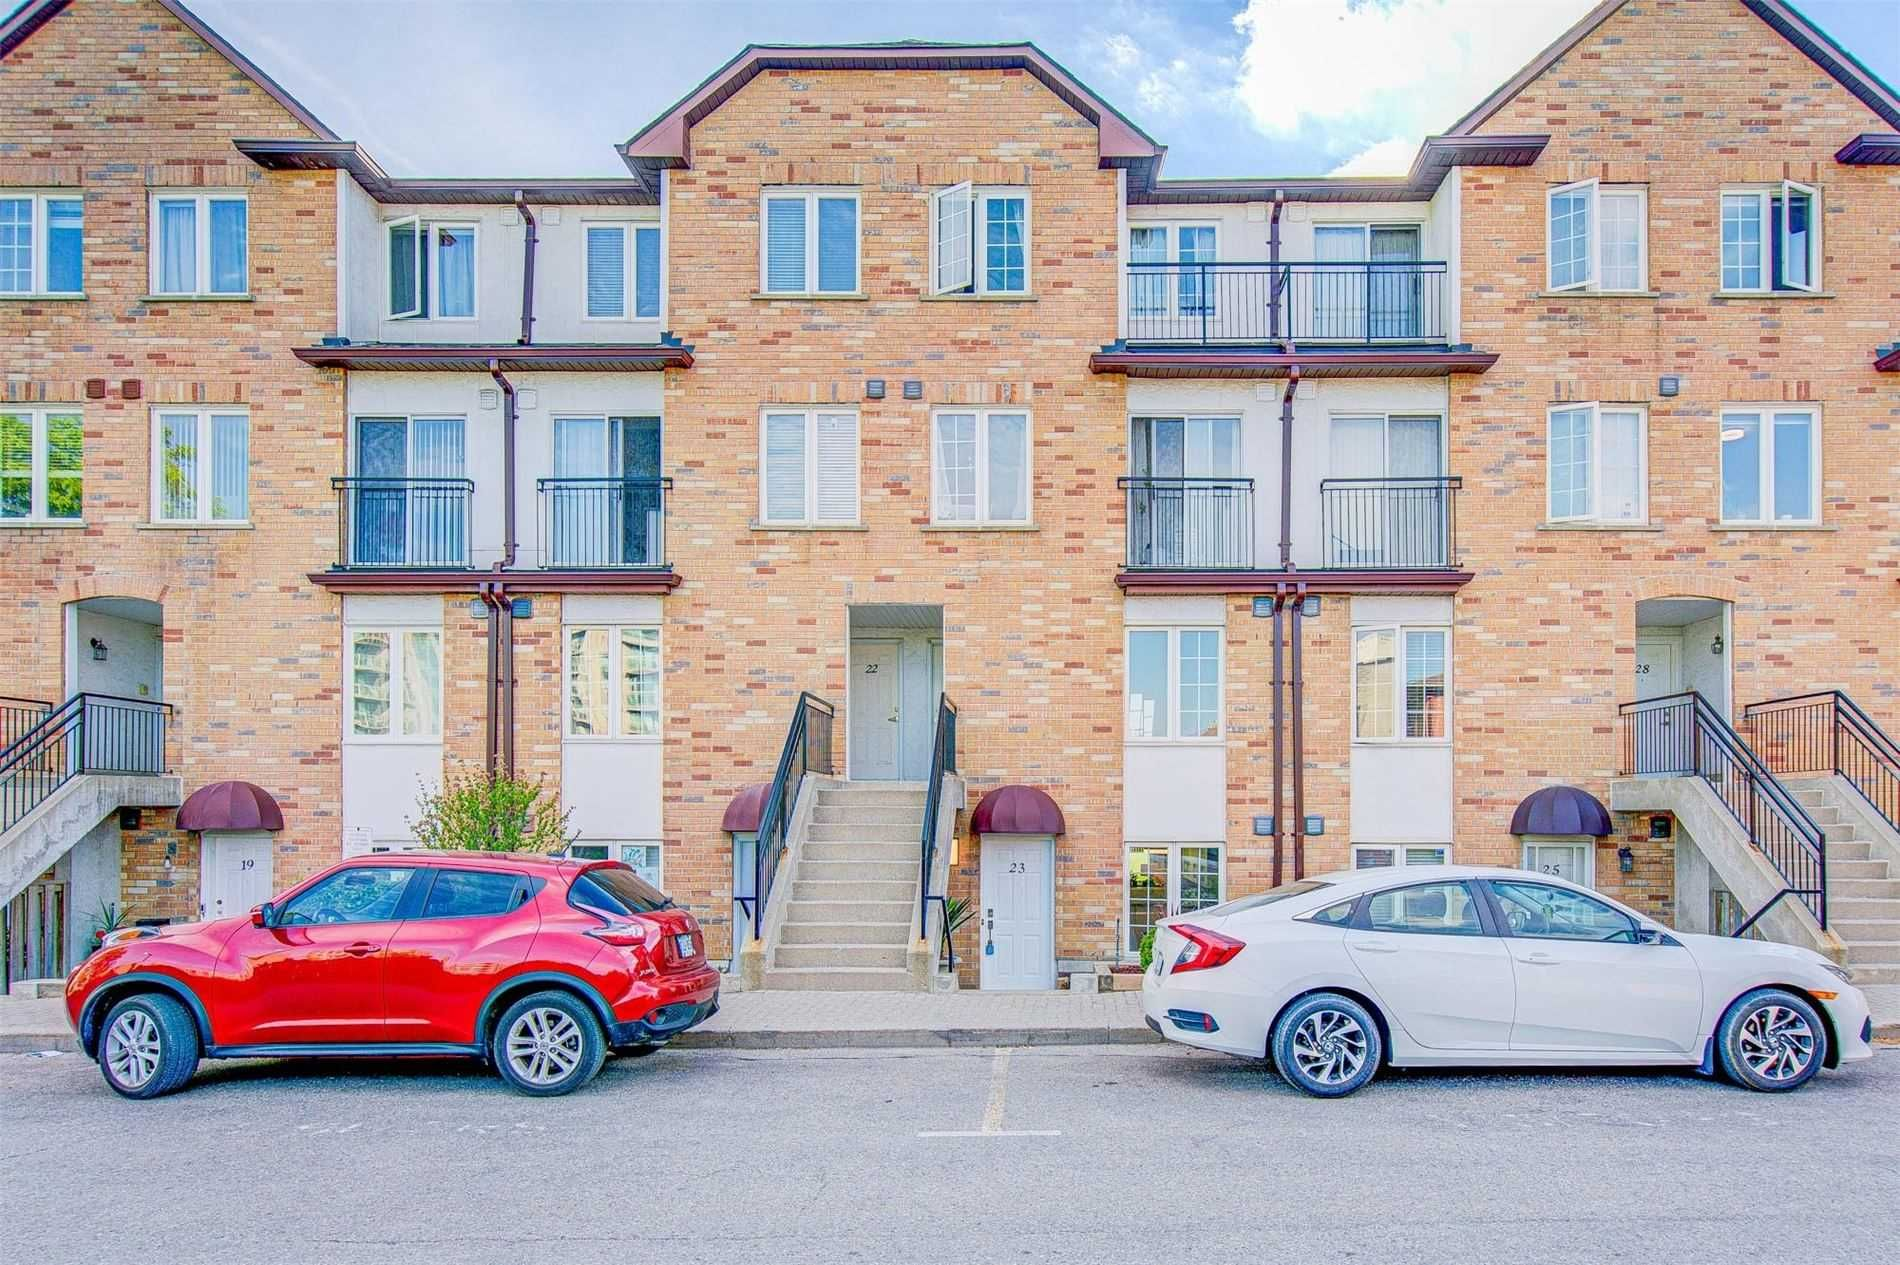 988 Sheppard Ave W, unit 23 for sale in Toronto - image #1